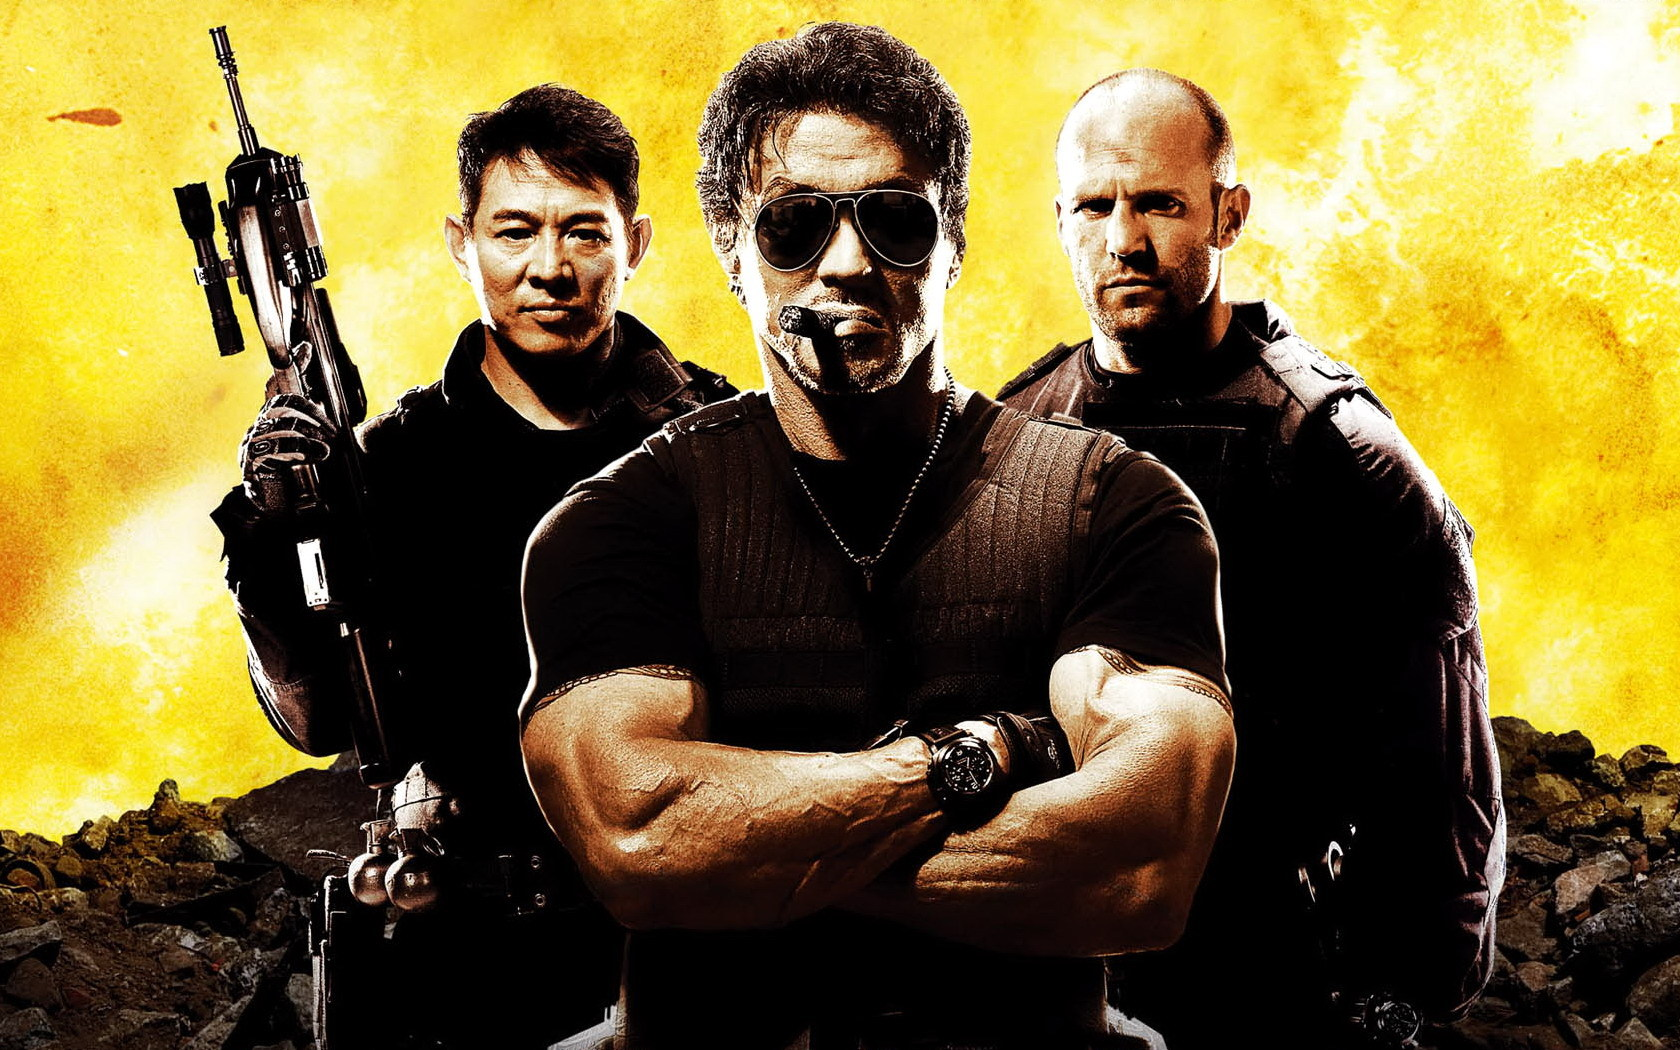 10091 download wallpaper Cinema, People, Actors, Men, Expendables, Sylvester Stallone, Jason Statham, Jet Li screensavers and pictures for free